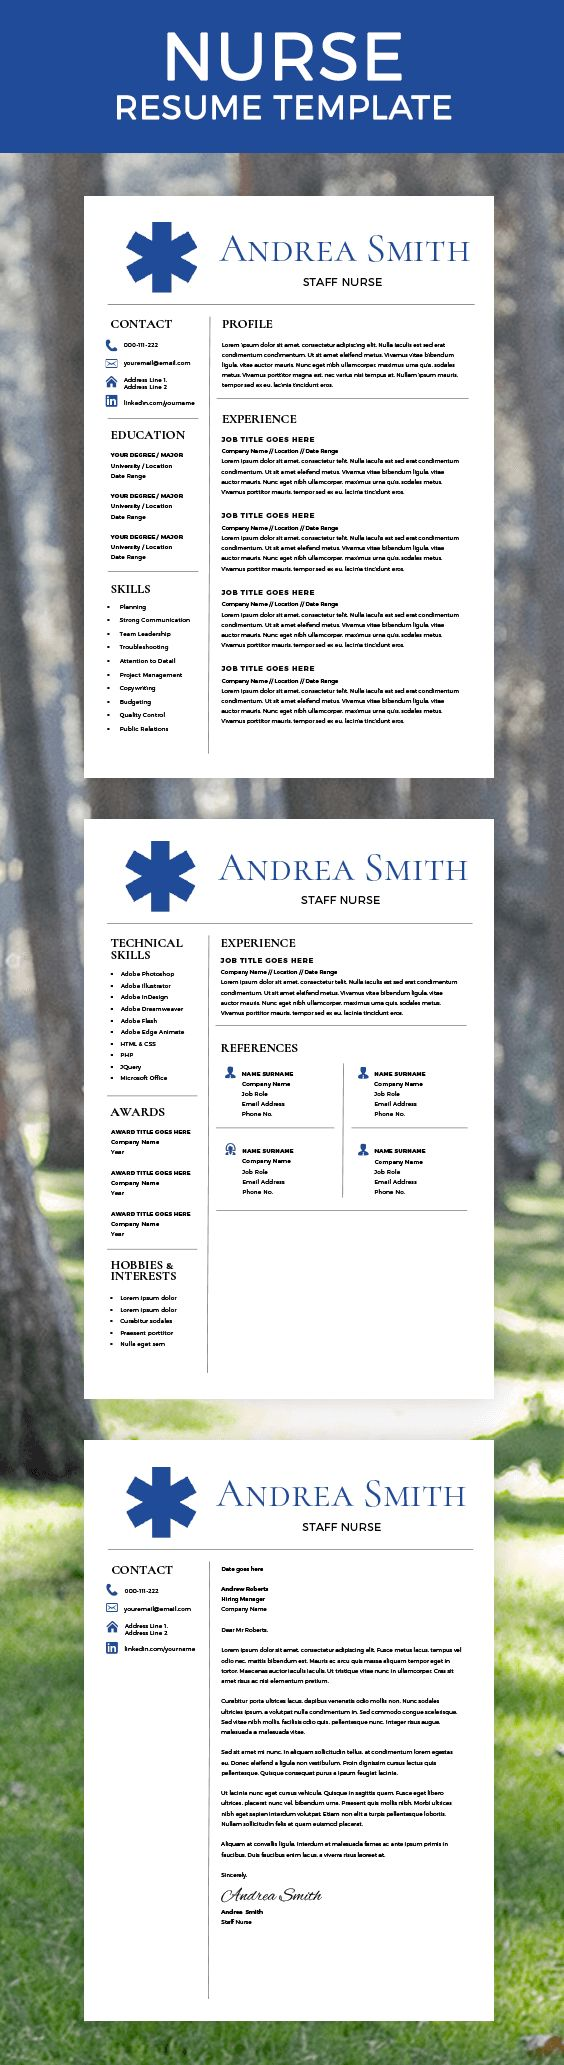 excellent resume formats%0A nursing resume objective examples